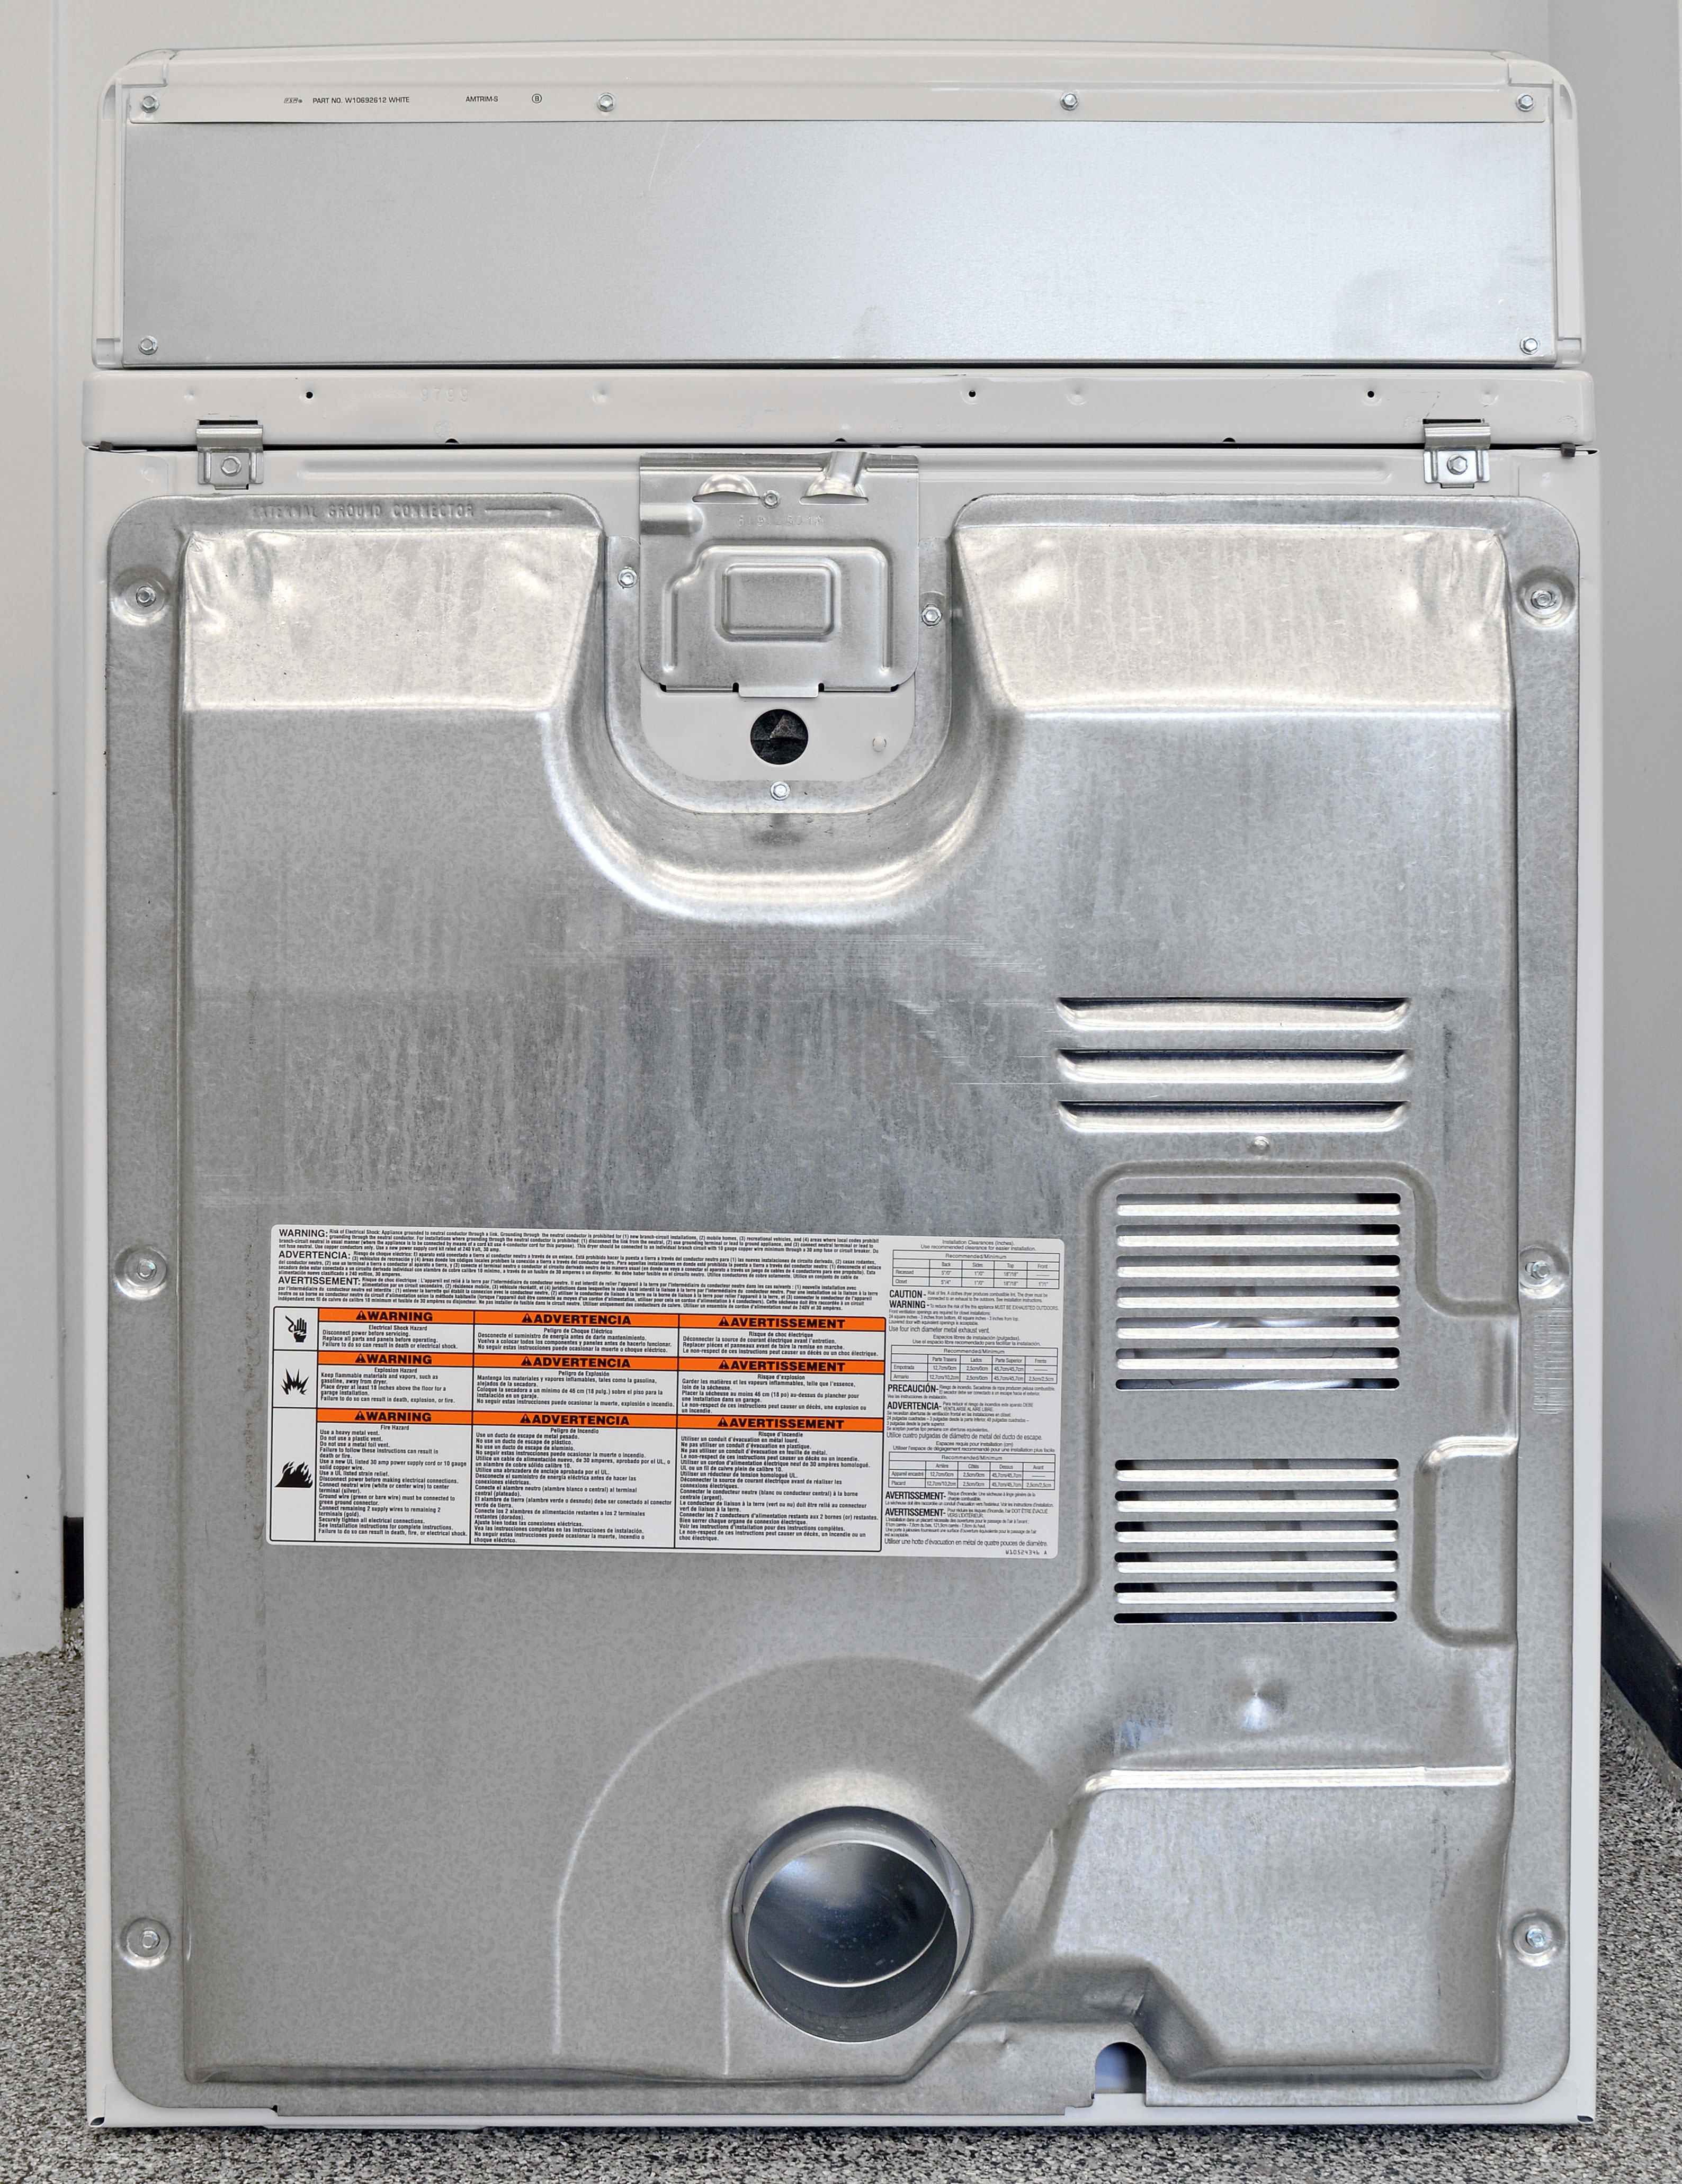 The Maytag Centennial MEDC415EW has no steam hookup, so there's nothing in back of interest.